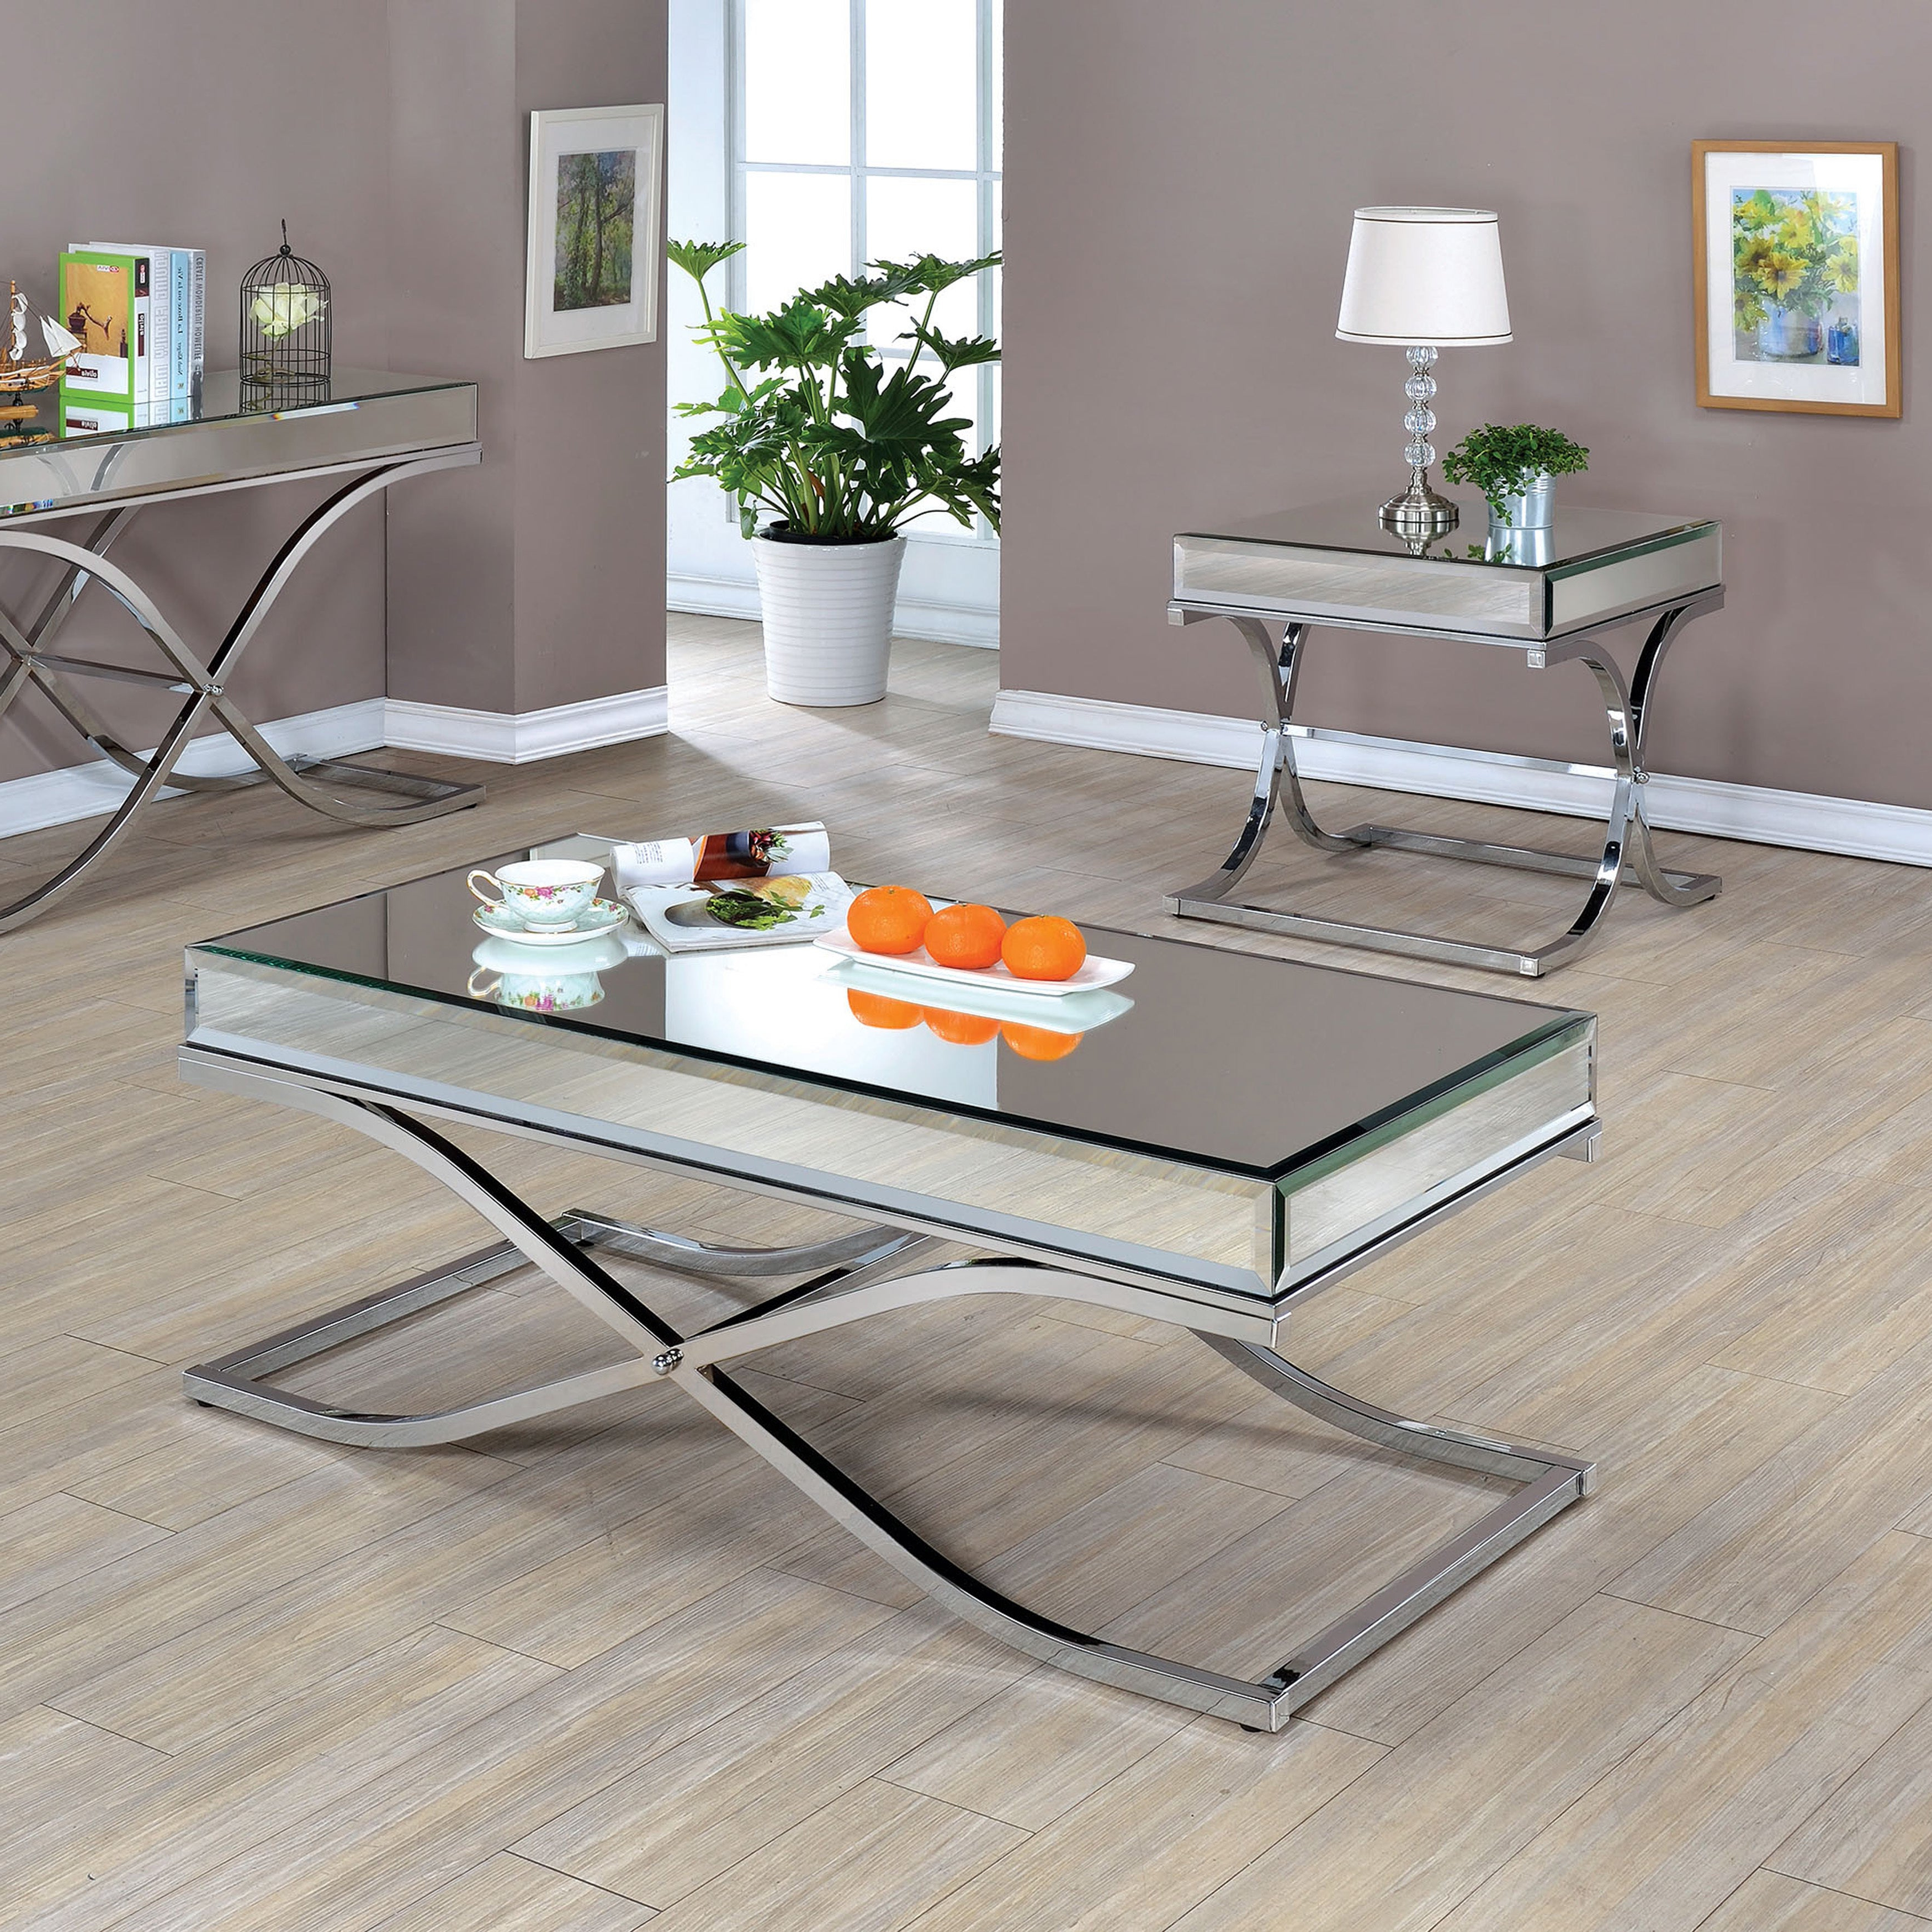 Latest Furniture Of America Orelia Brass Luxury Copper Metal Coffee Tables Throughout Furniture Of America Orelia Luxury Chrome 2 Piece Accent Table Set – Chrome/black (View 12 of 20)